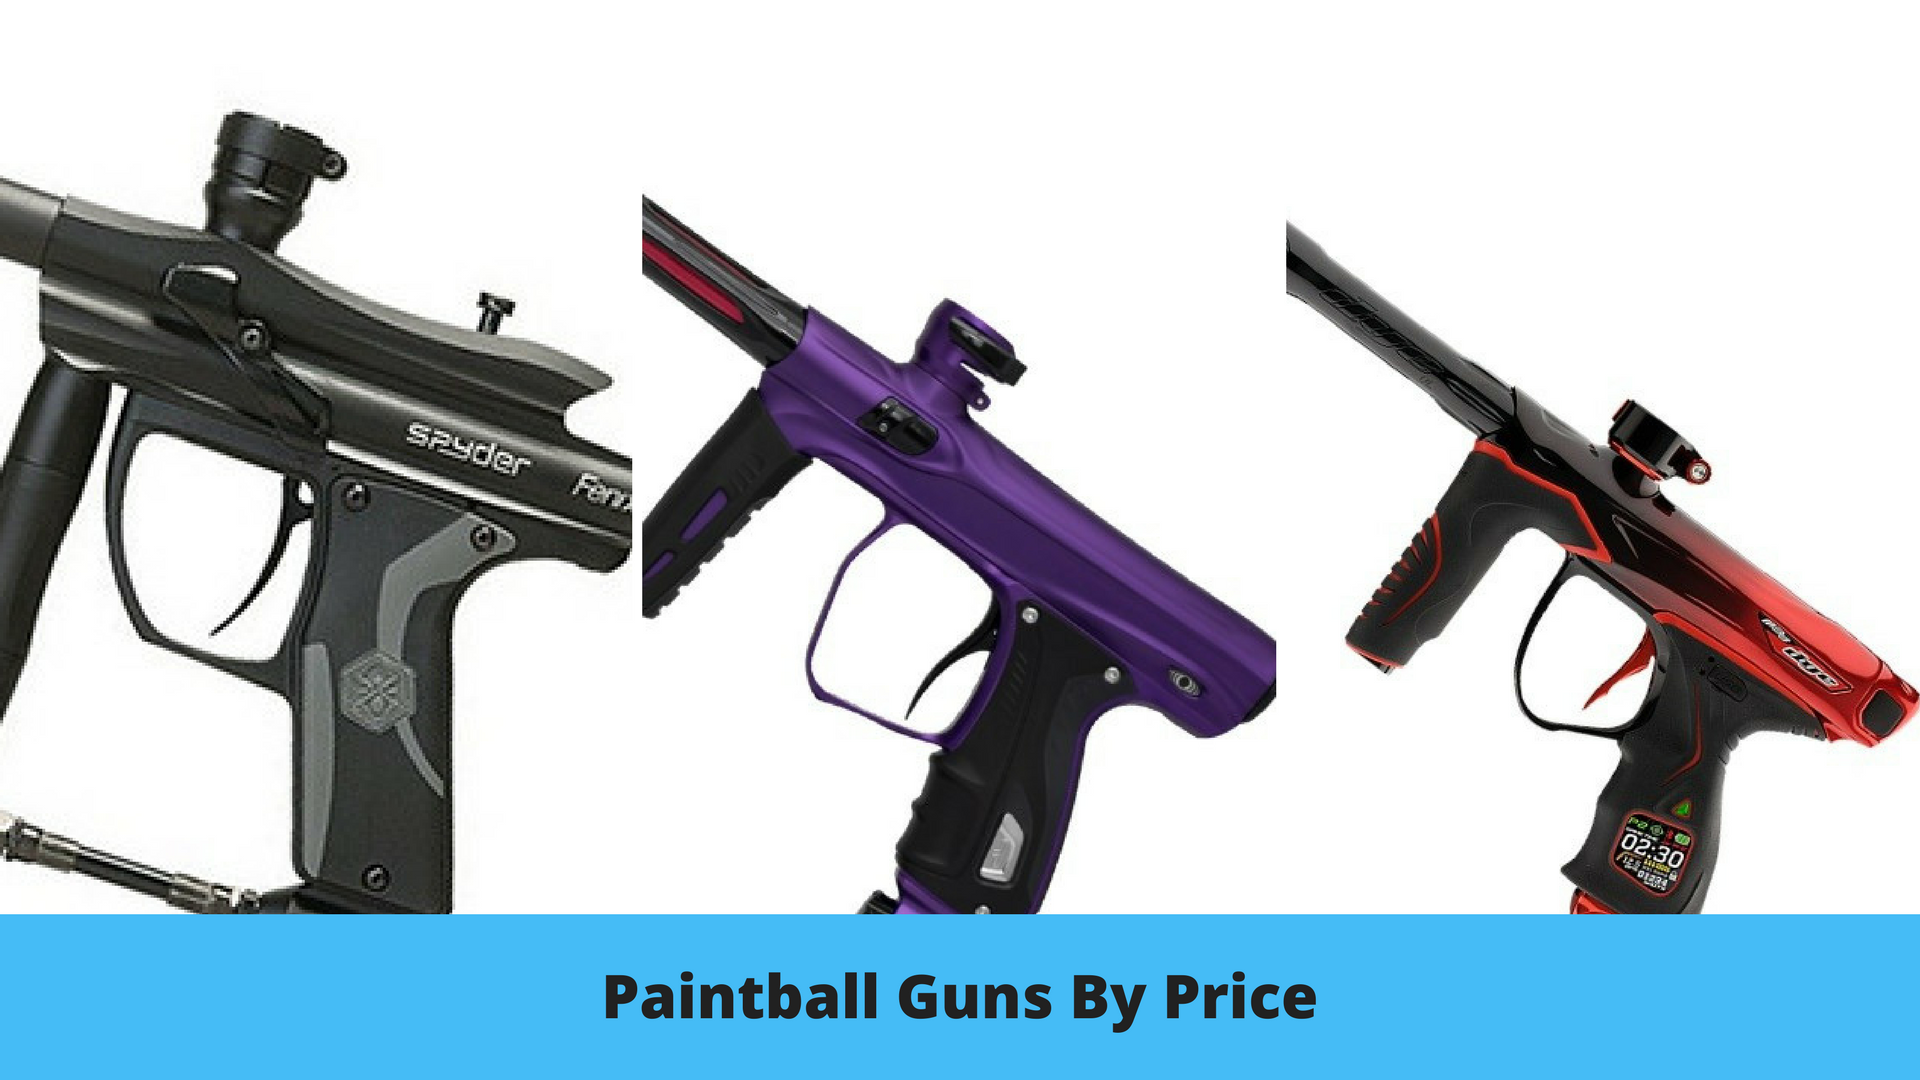 Paintball Guns by Price